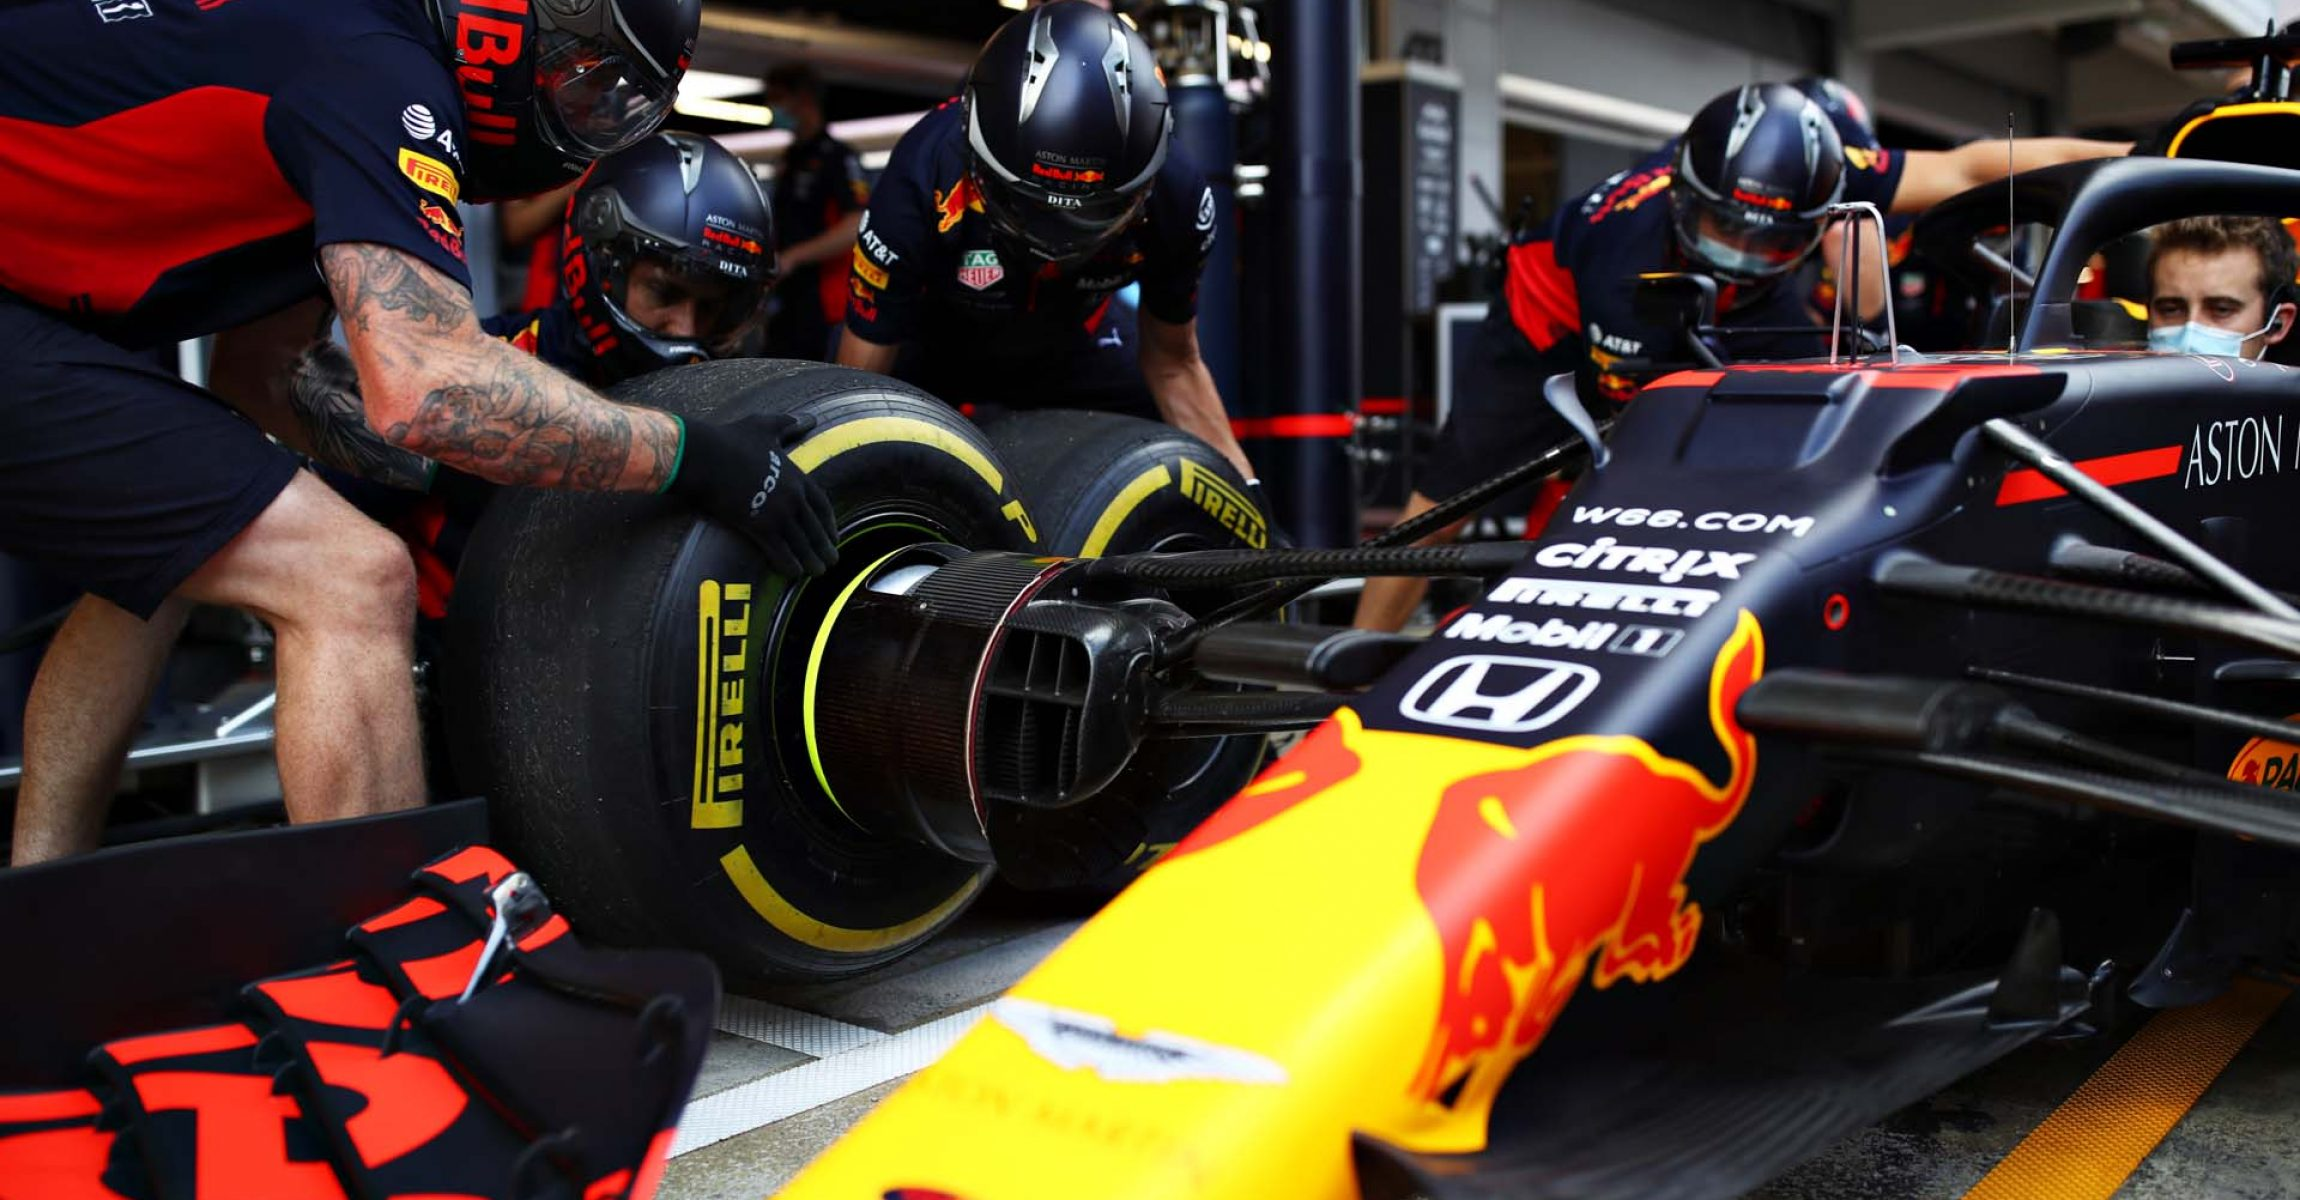 BARCELONA, SPAIN - AUGUST 13: The Red Bull Racing team practice pitstops during previews ahead of the F1 Grand Prix of Spain at Circuit de Barcelona-Catalunya on August 13, 2020 in Barcelona, Spain. (Photo by Mark Thompson/Getty Images)